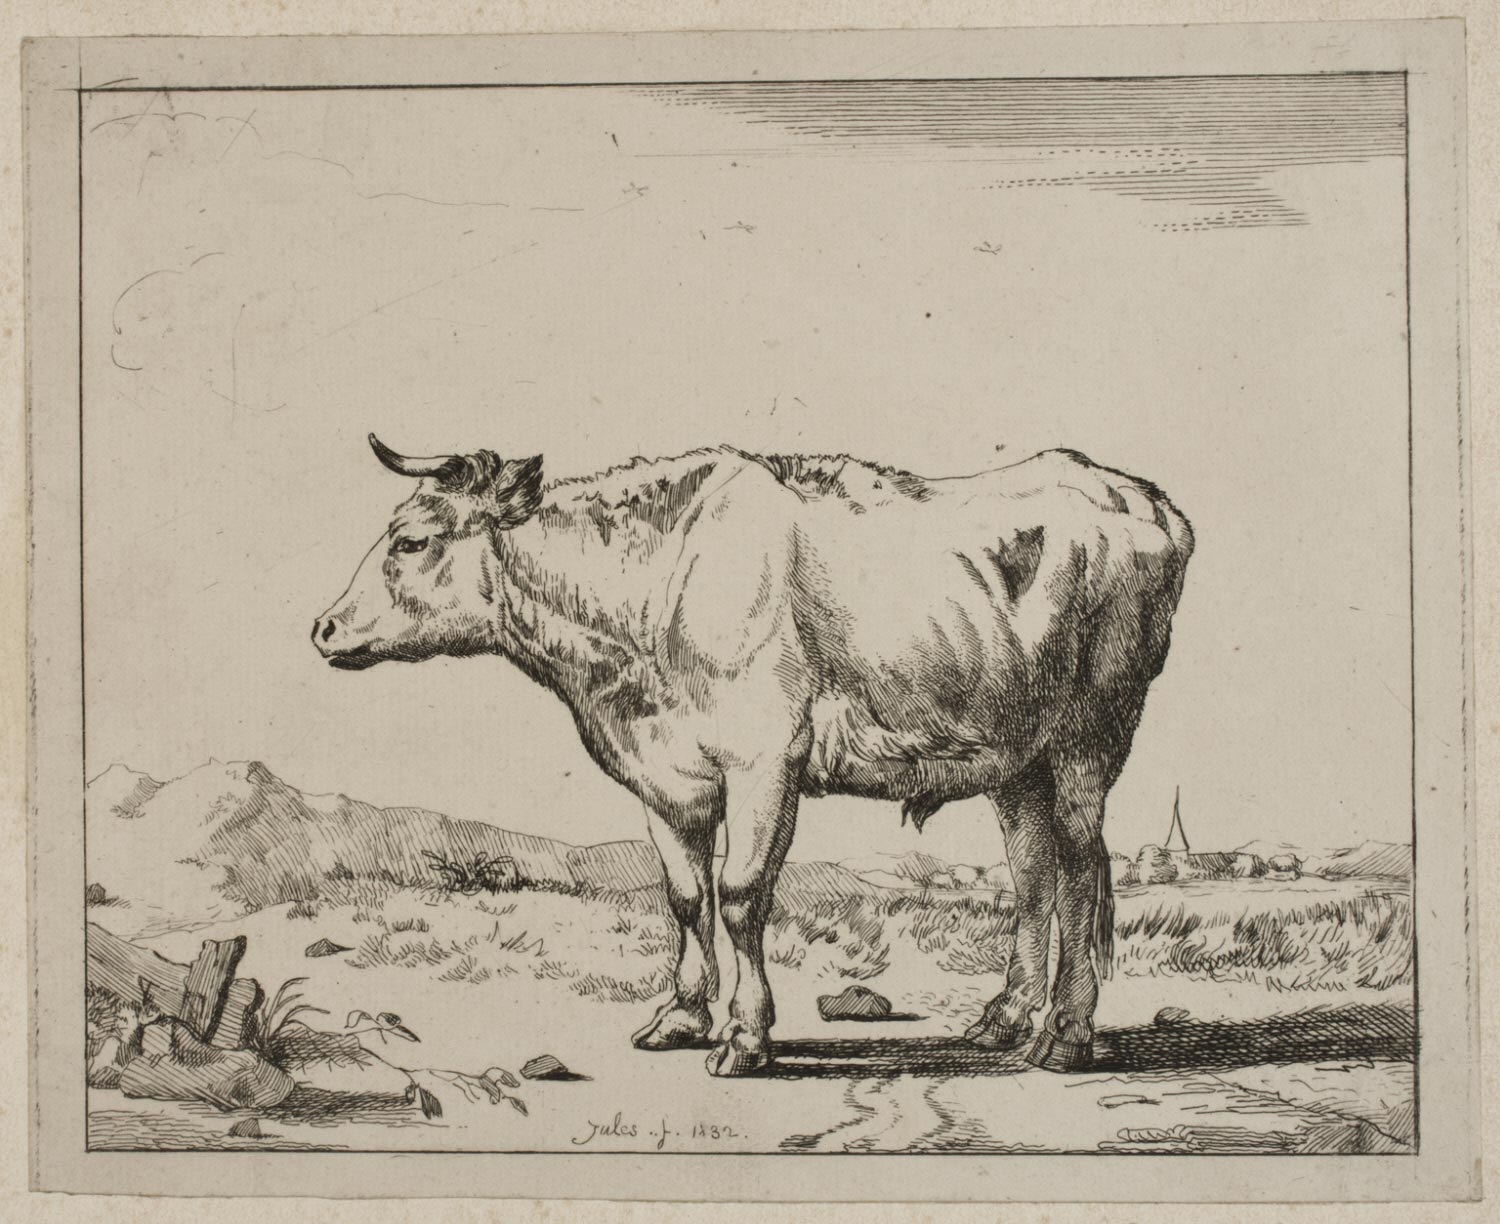 Bull in a Landscape